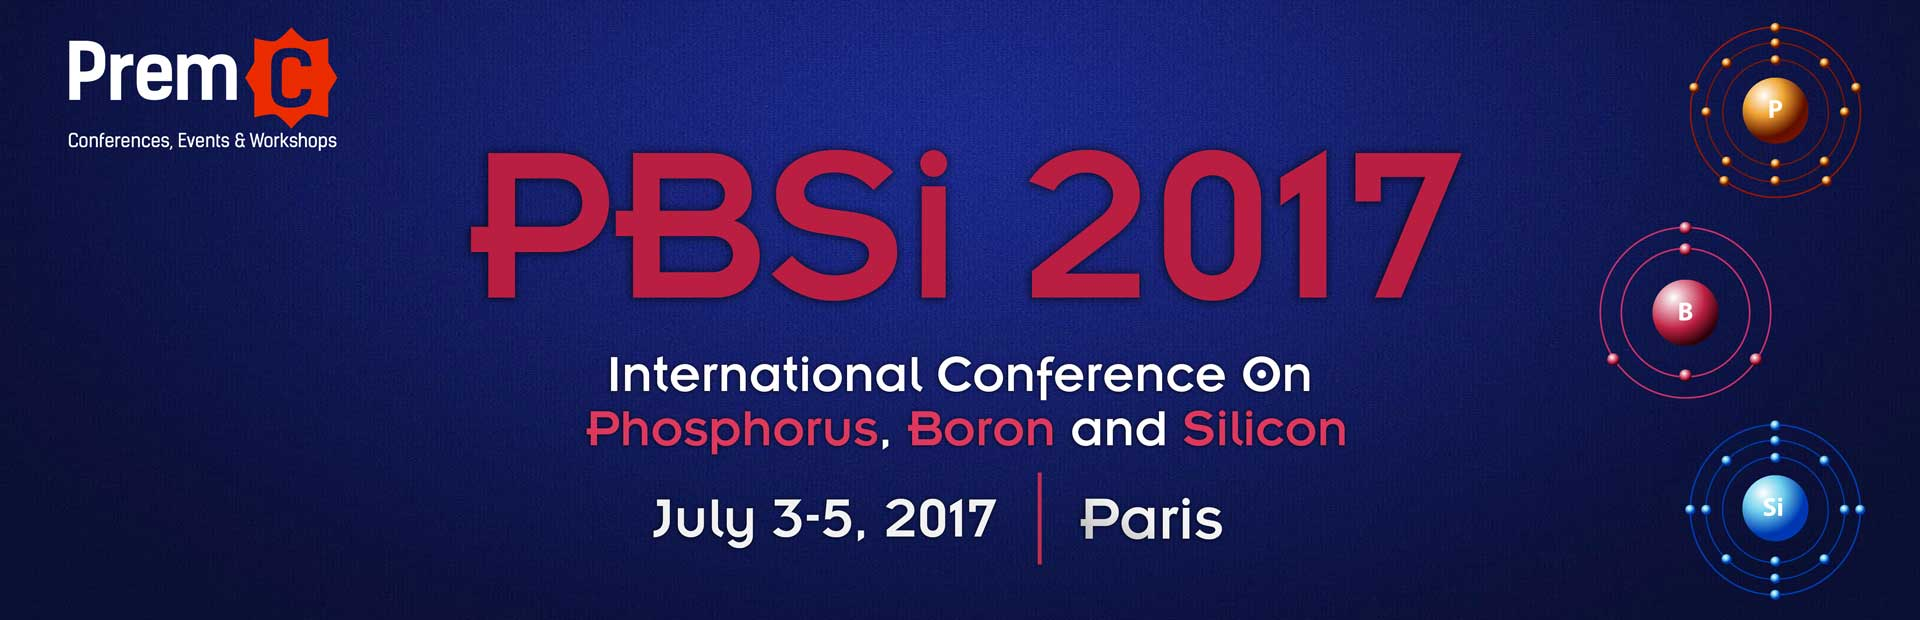 International Conference On Phosphorus, Boron And Silicon - PBSI 2017